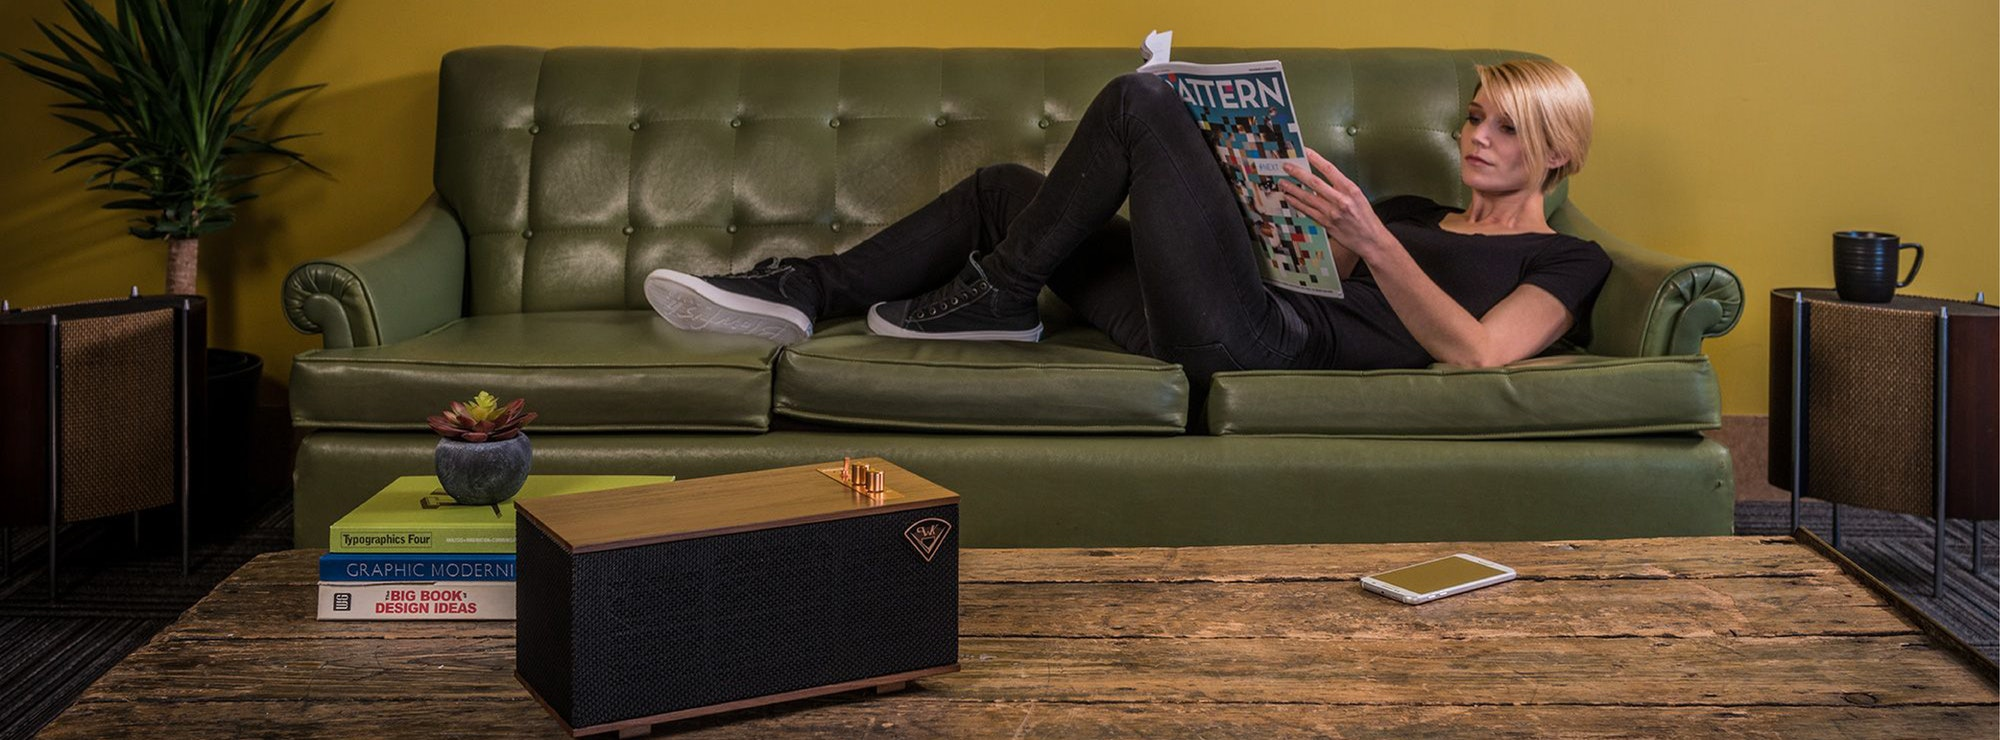 Lady reading a magazine on the couch listening to a Klipsch wireless speaker